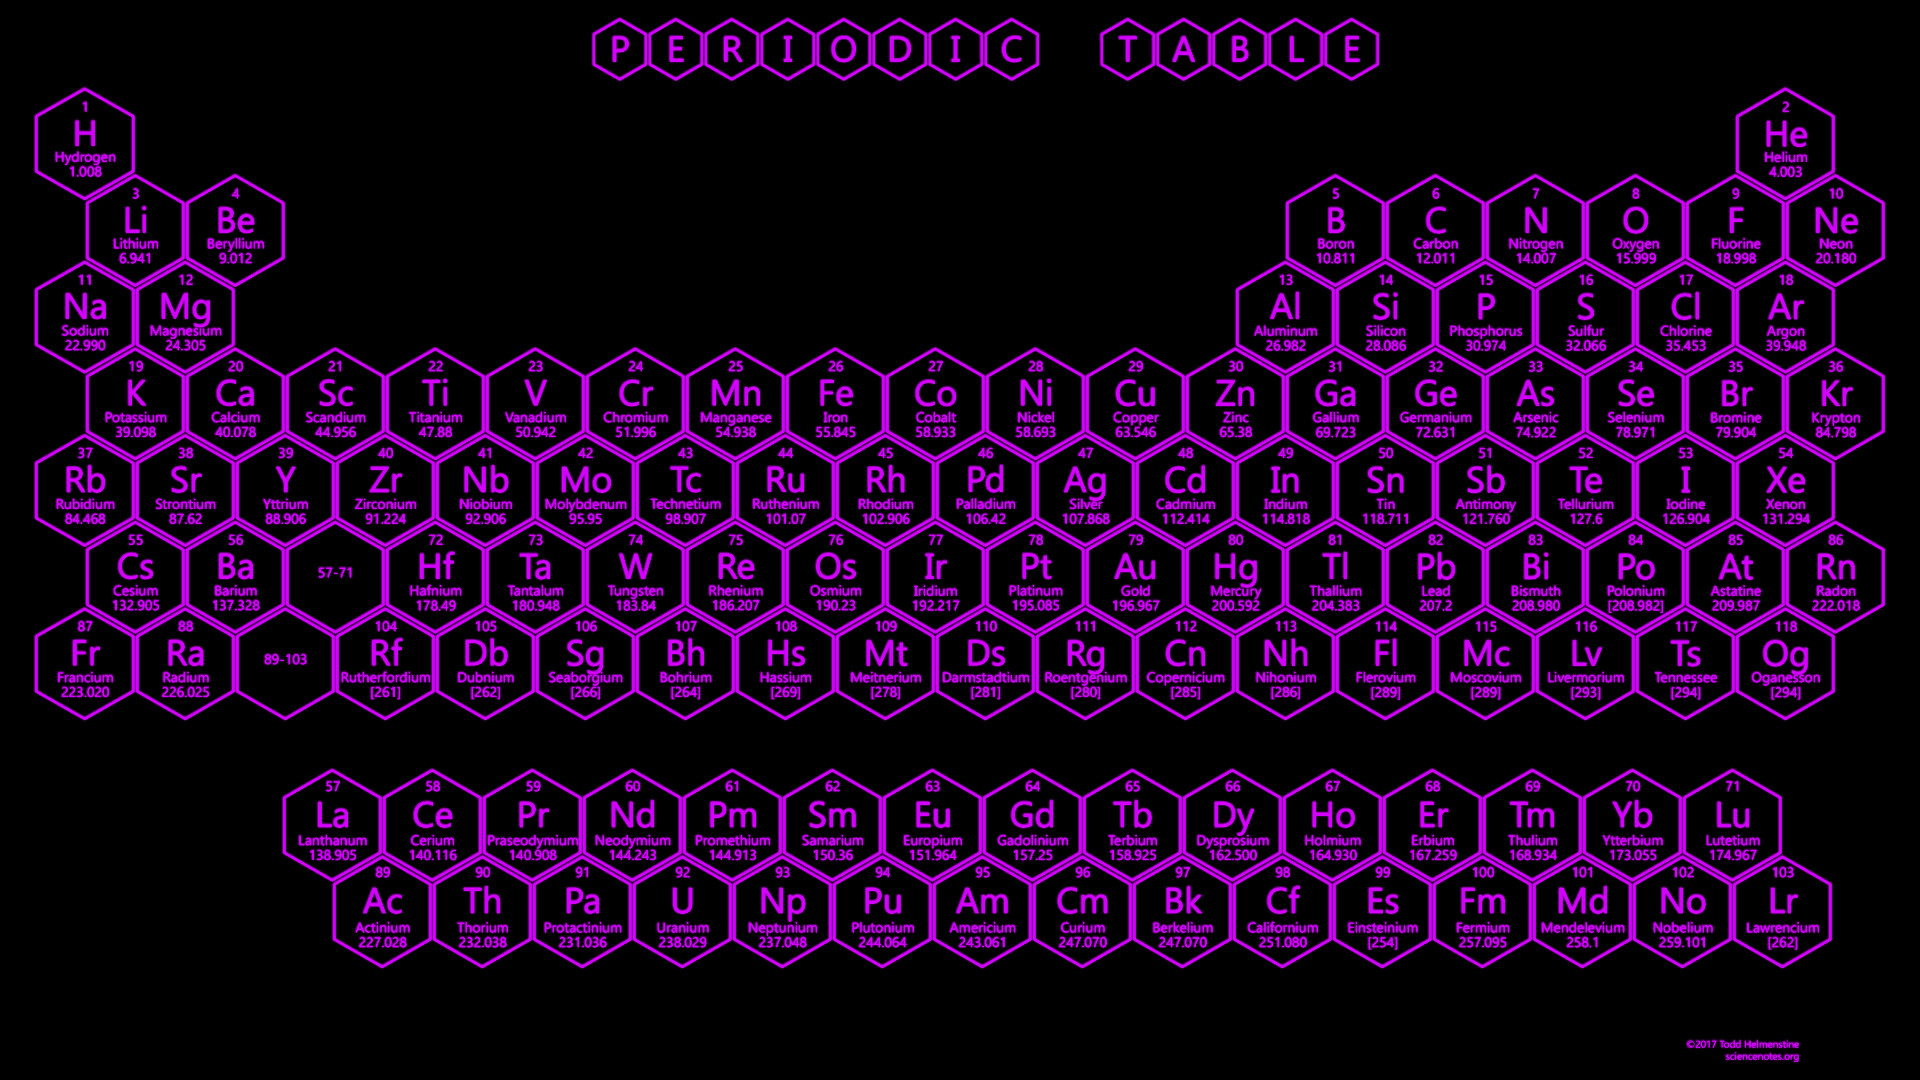 1920x1080 purple neon honeycomb periodic table 2017 edition download 1920x1080